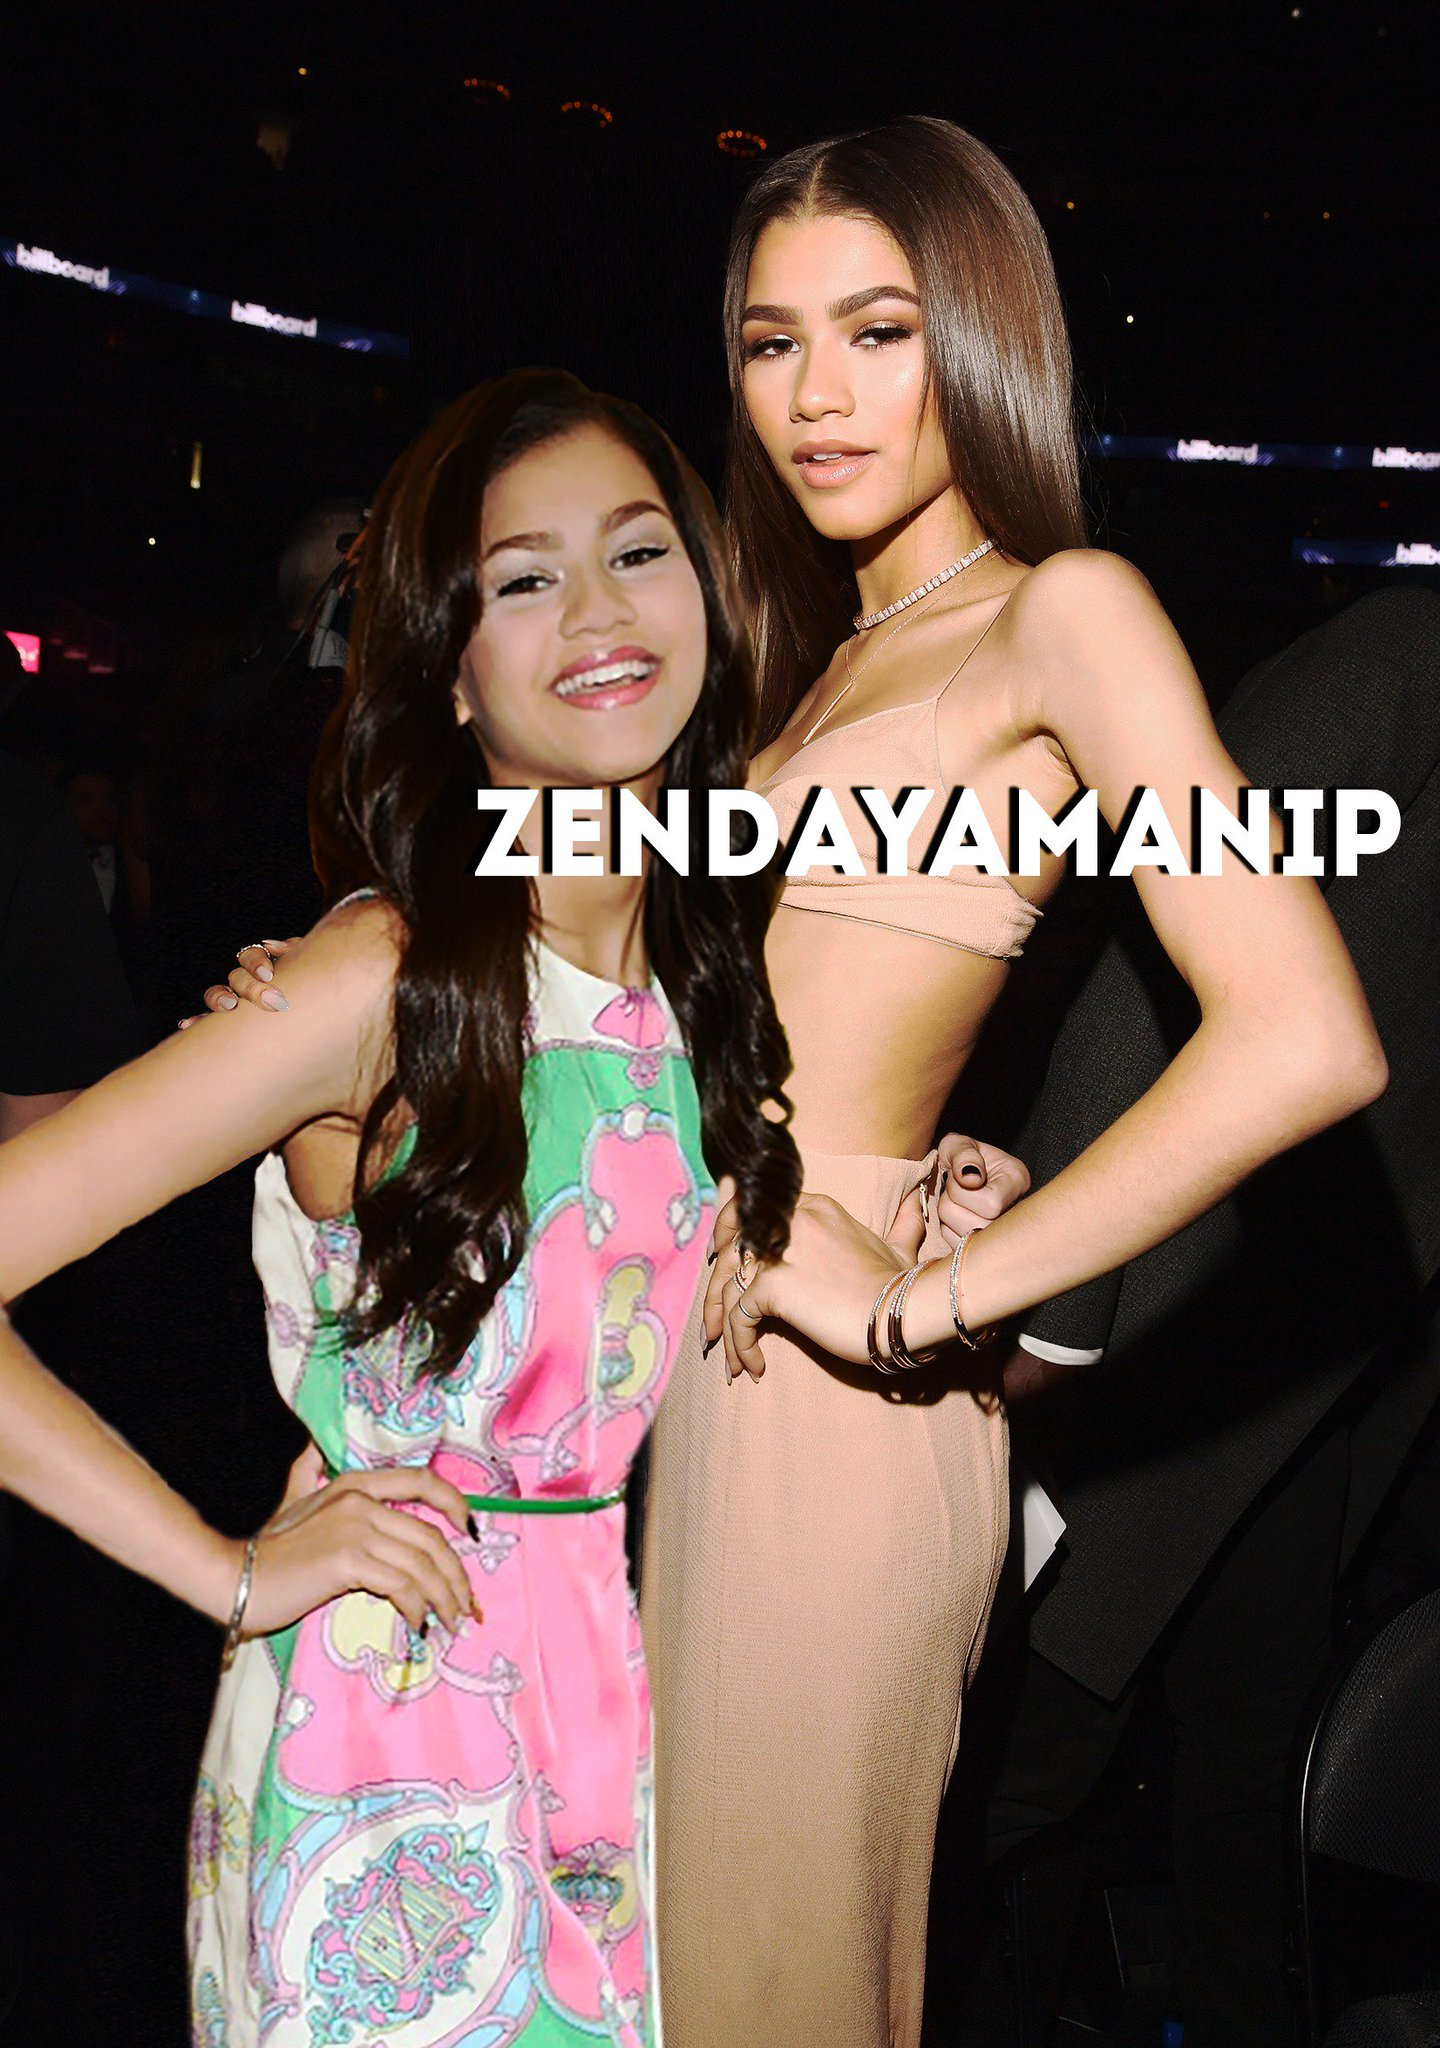 Happy 20th Birthday Zendaya Maree Stoermer Coleman